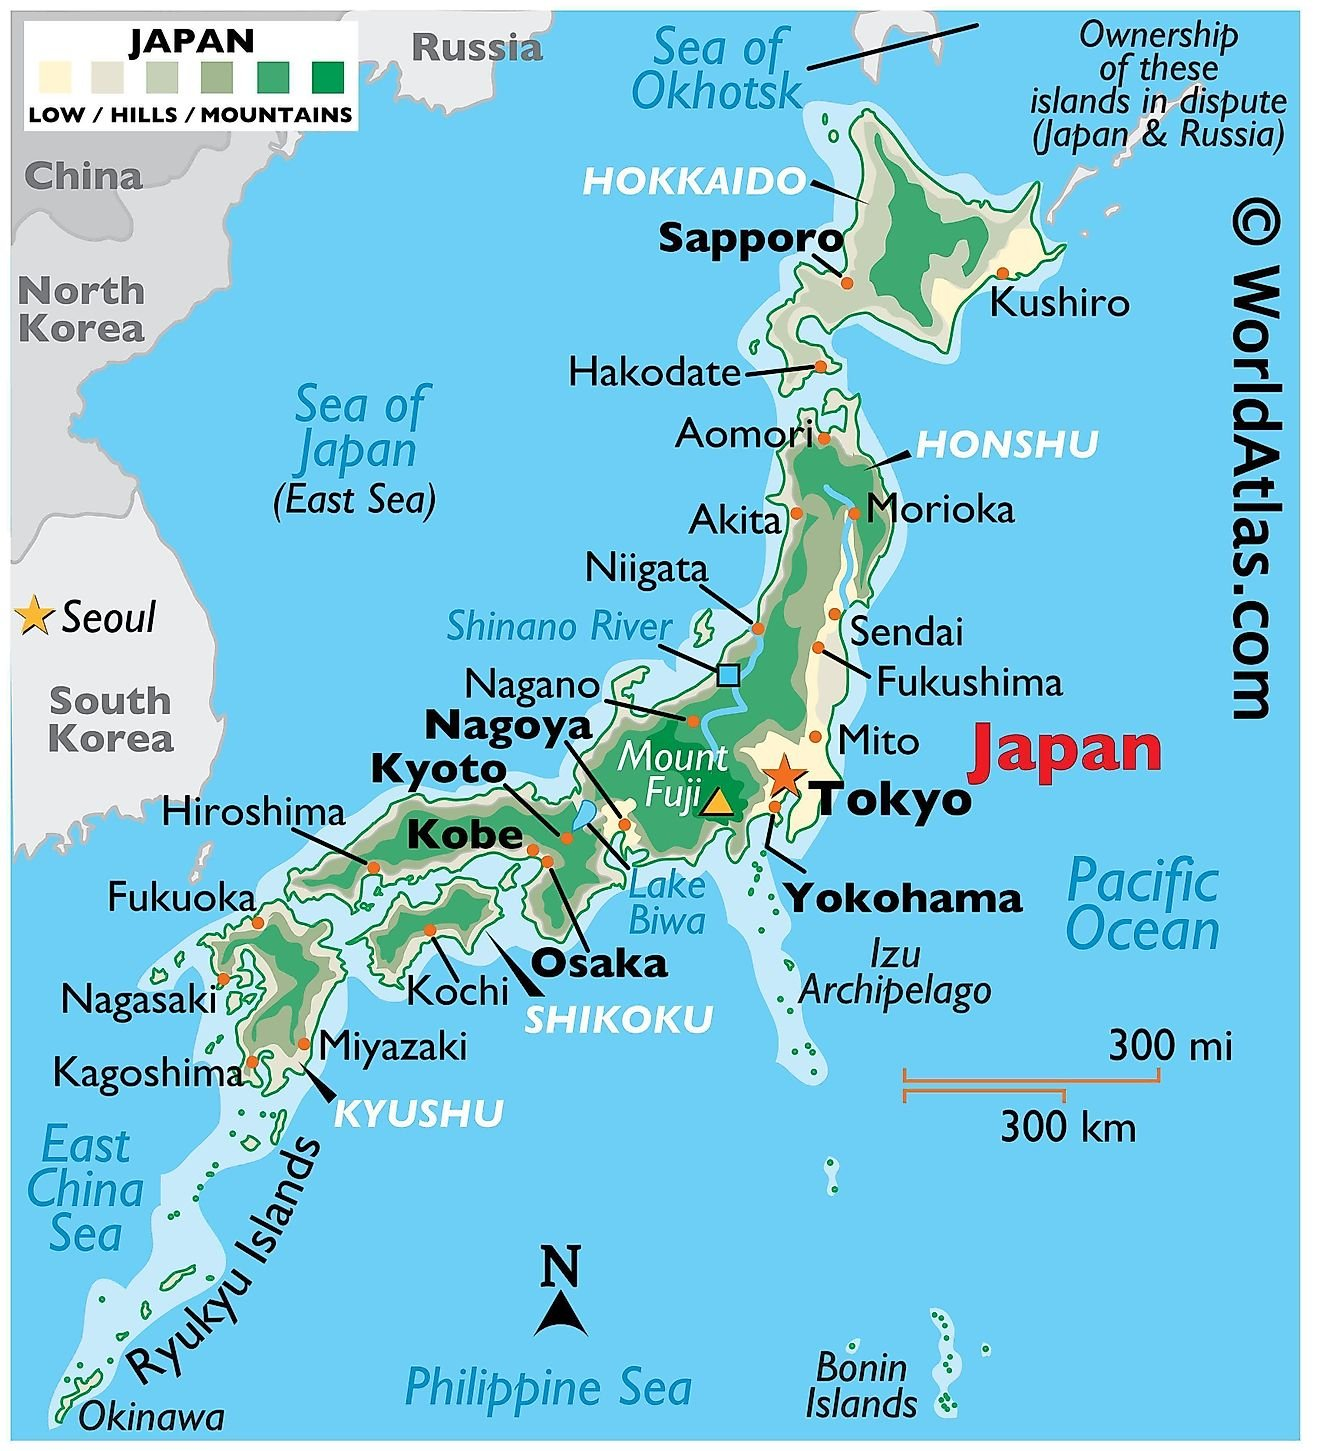 Japan Maps & Facts